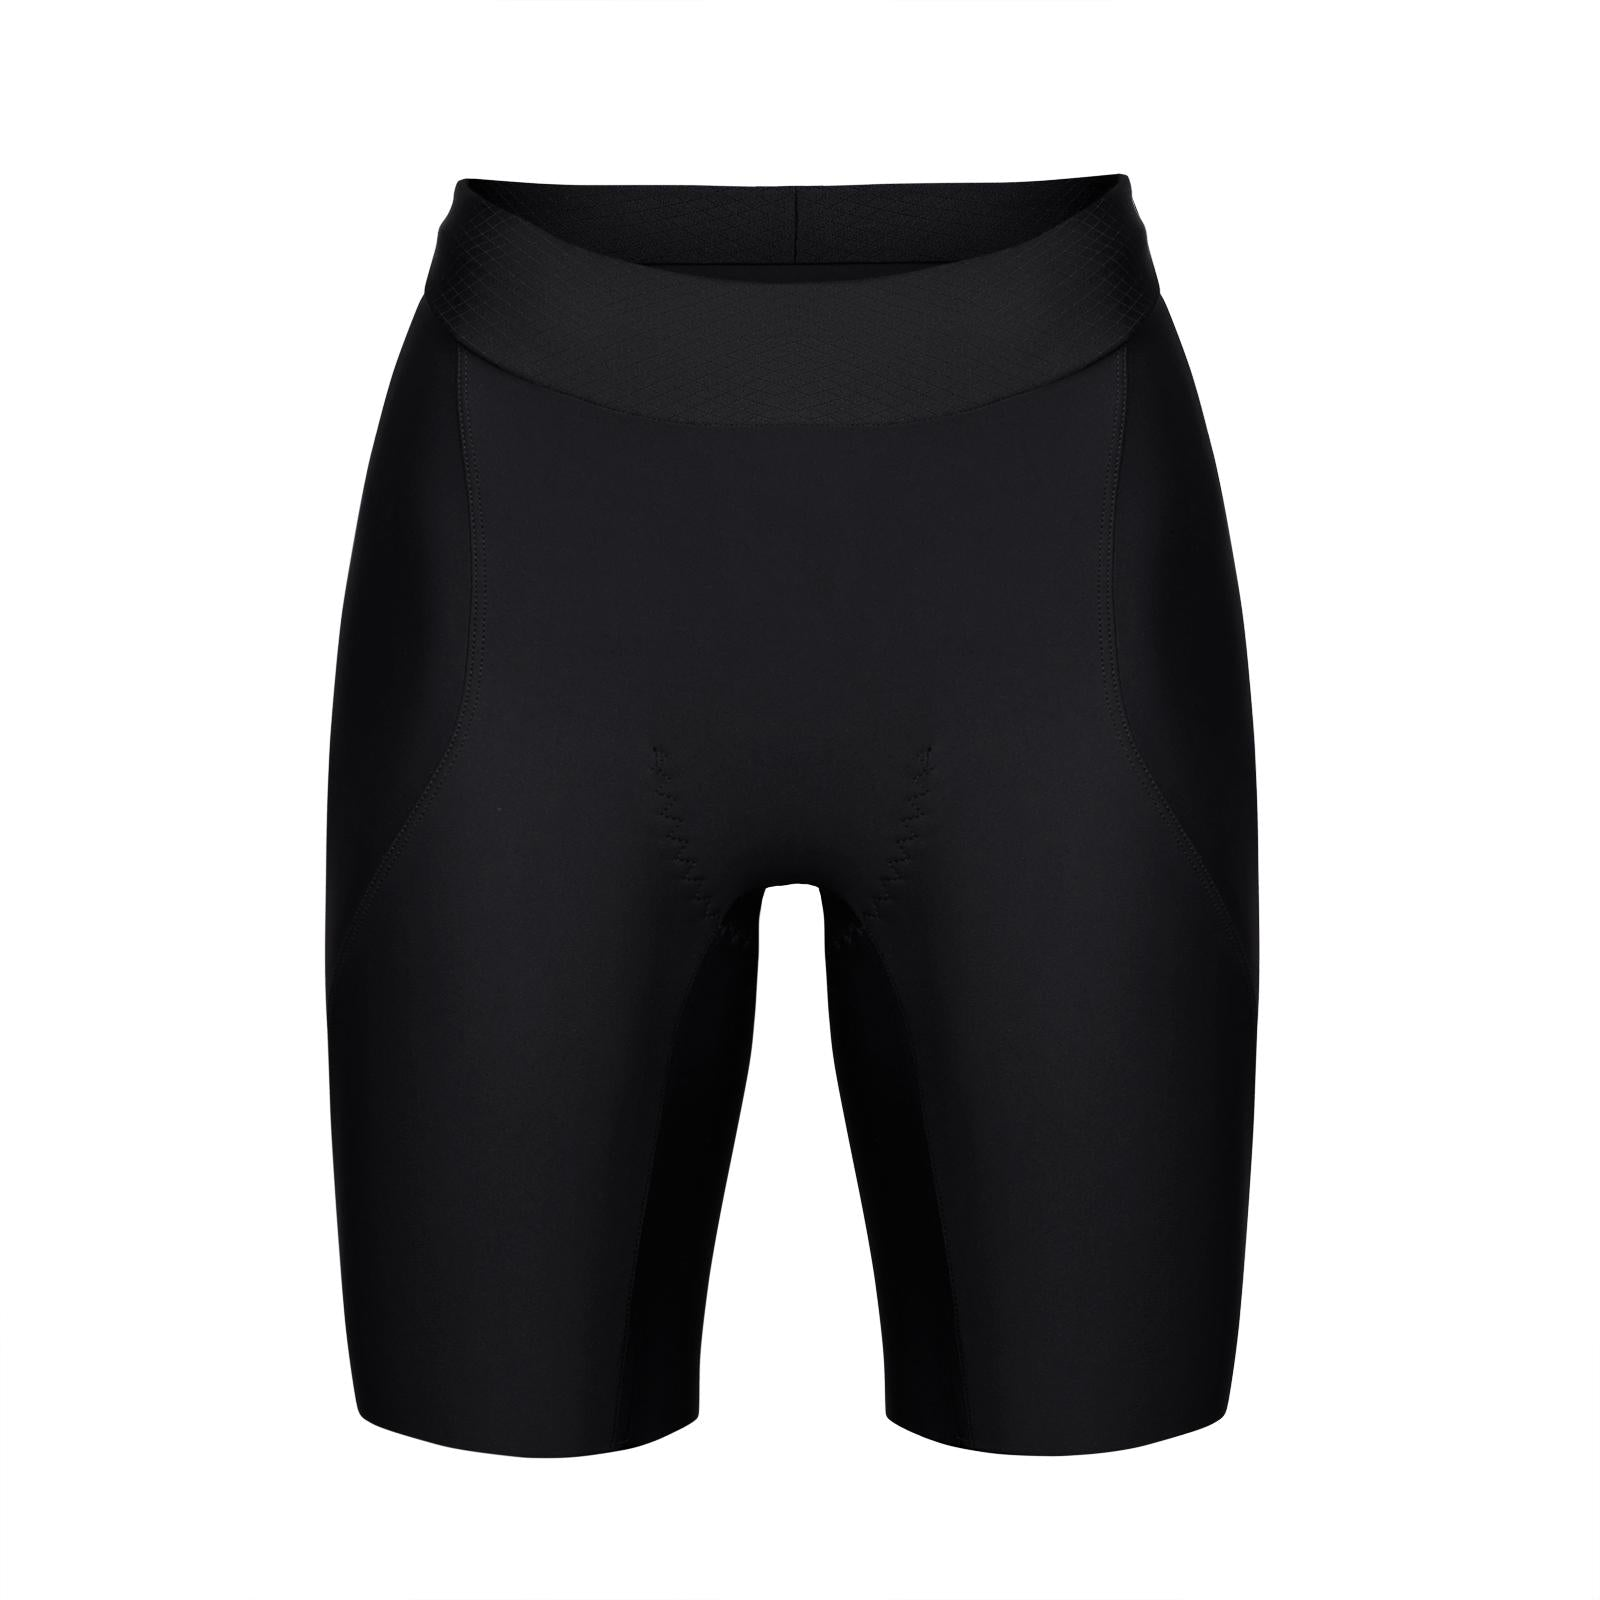 Women's Gen II Elite Aero Tri Short